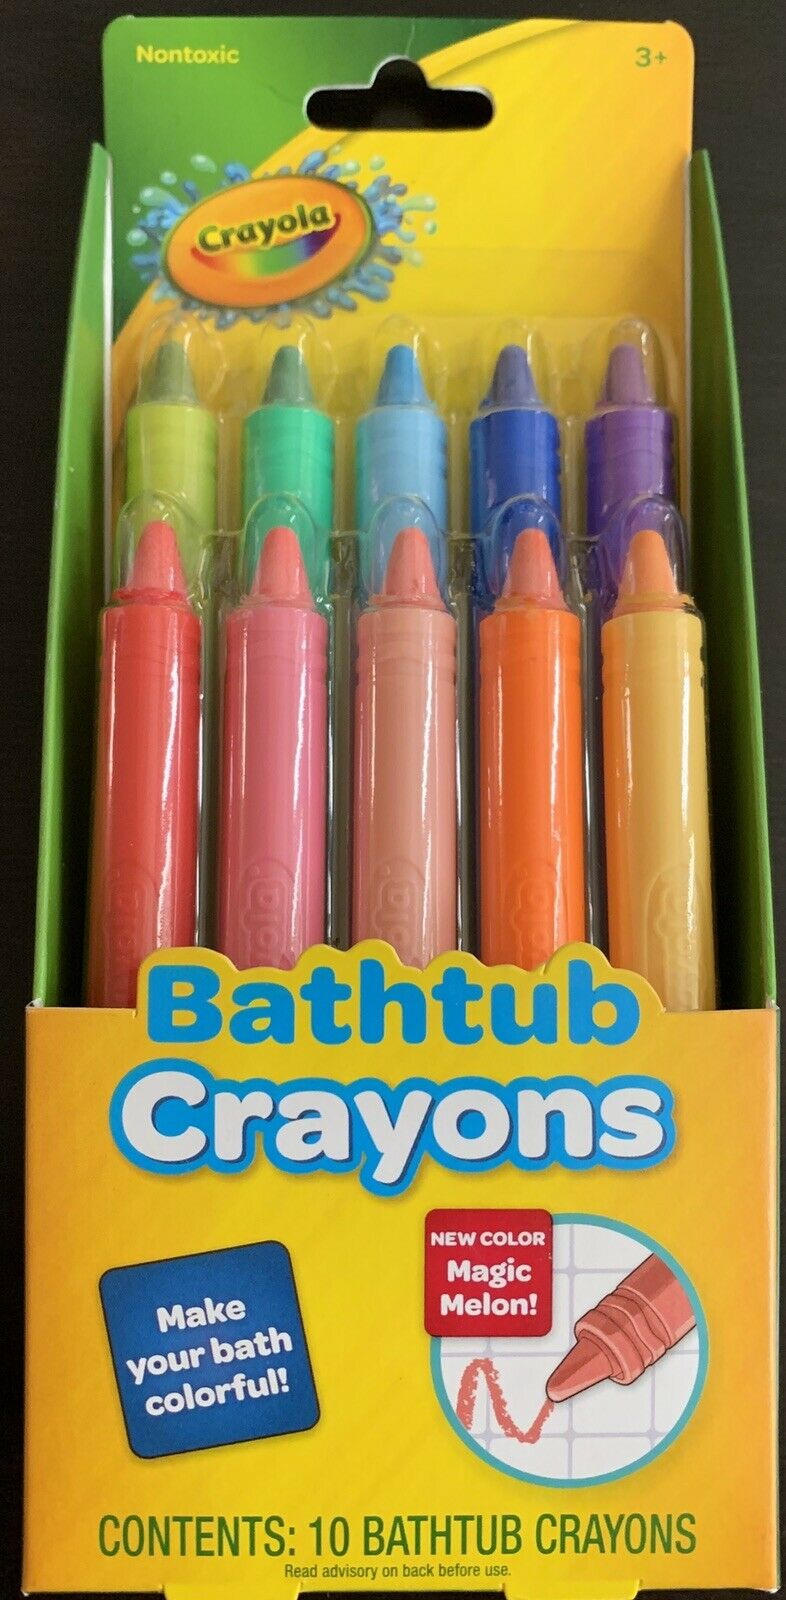 GBG BATHTUB CRAYONS 10PK 9CT Pack of 3